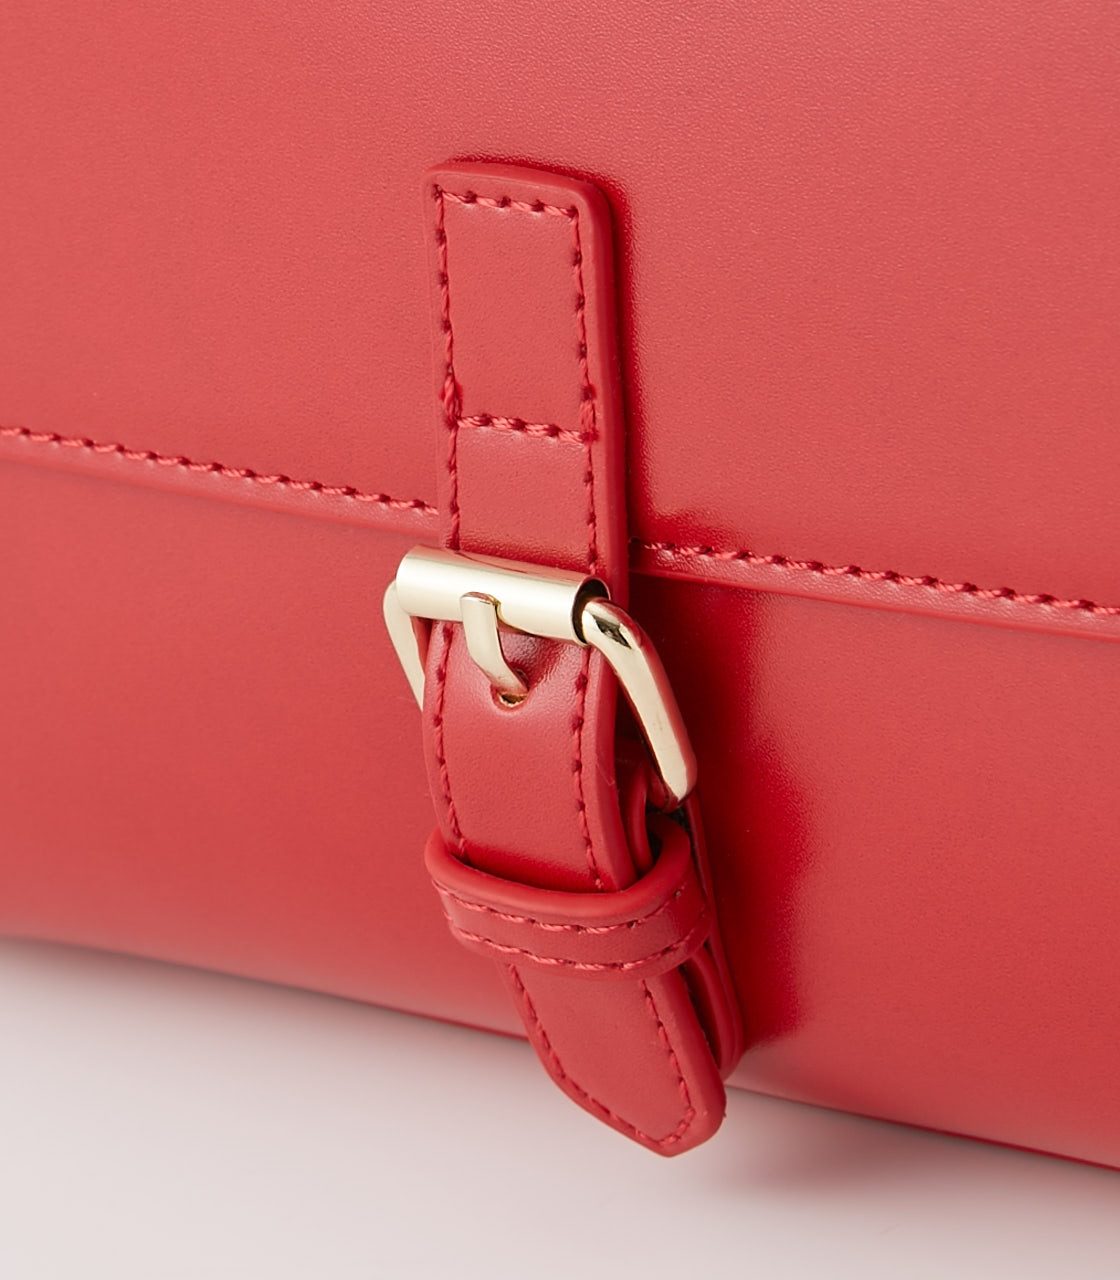 【AZUL BY MOUSSY】BELT DESIGN HAND BAG 詳細画像 RED 5